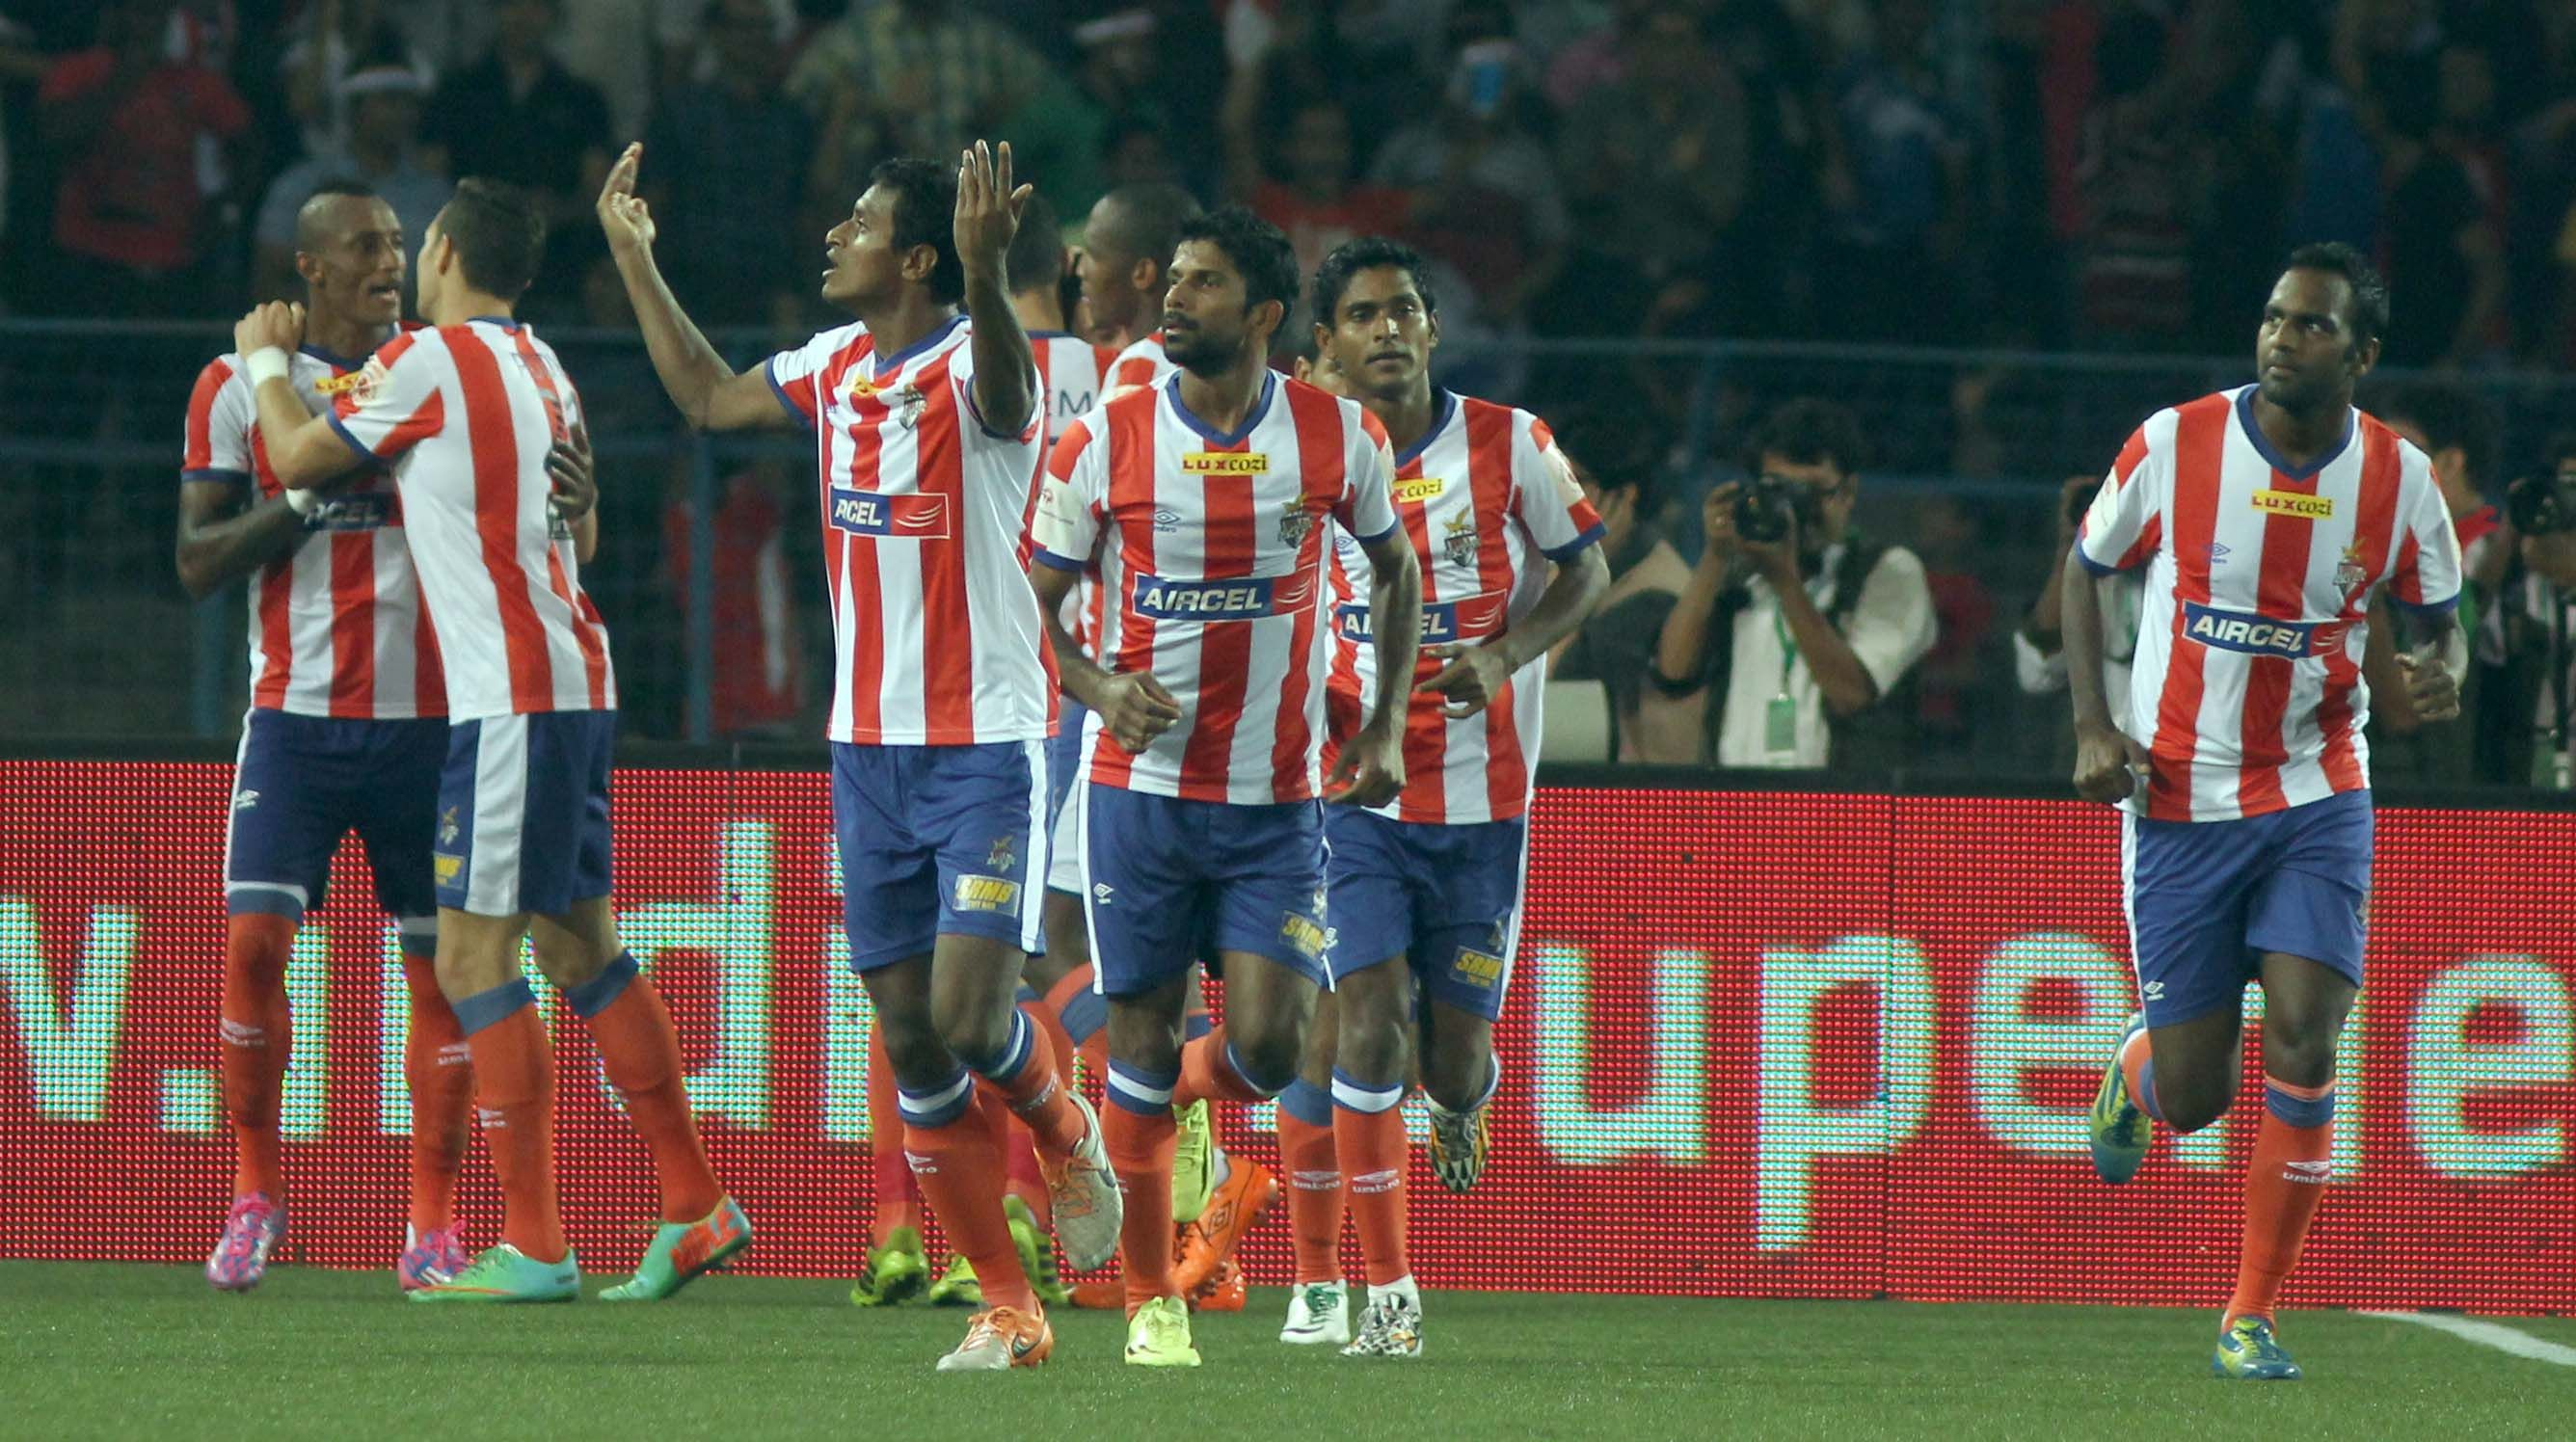 ATK has a roaring entry into ISLsemifinal. Let's cheer